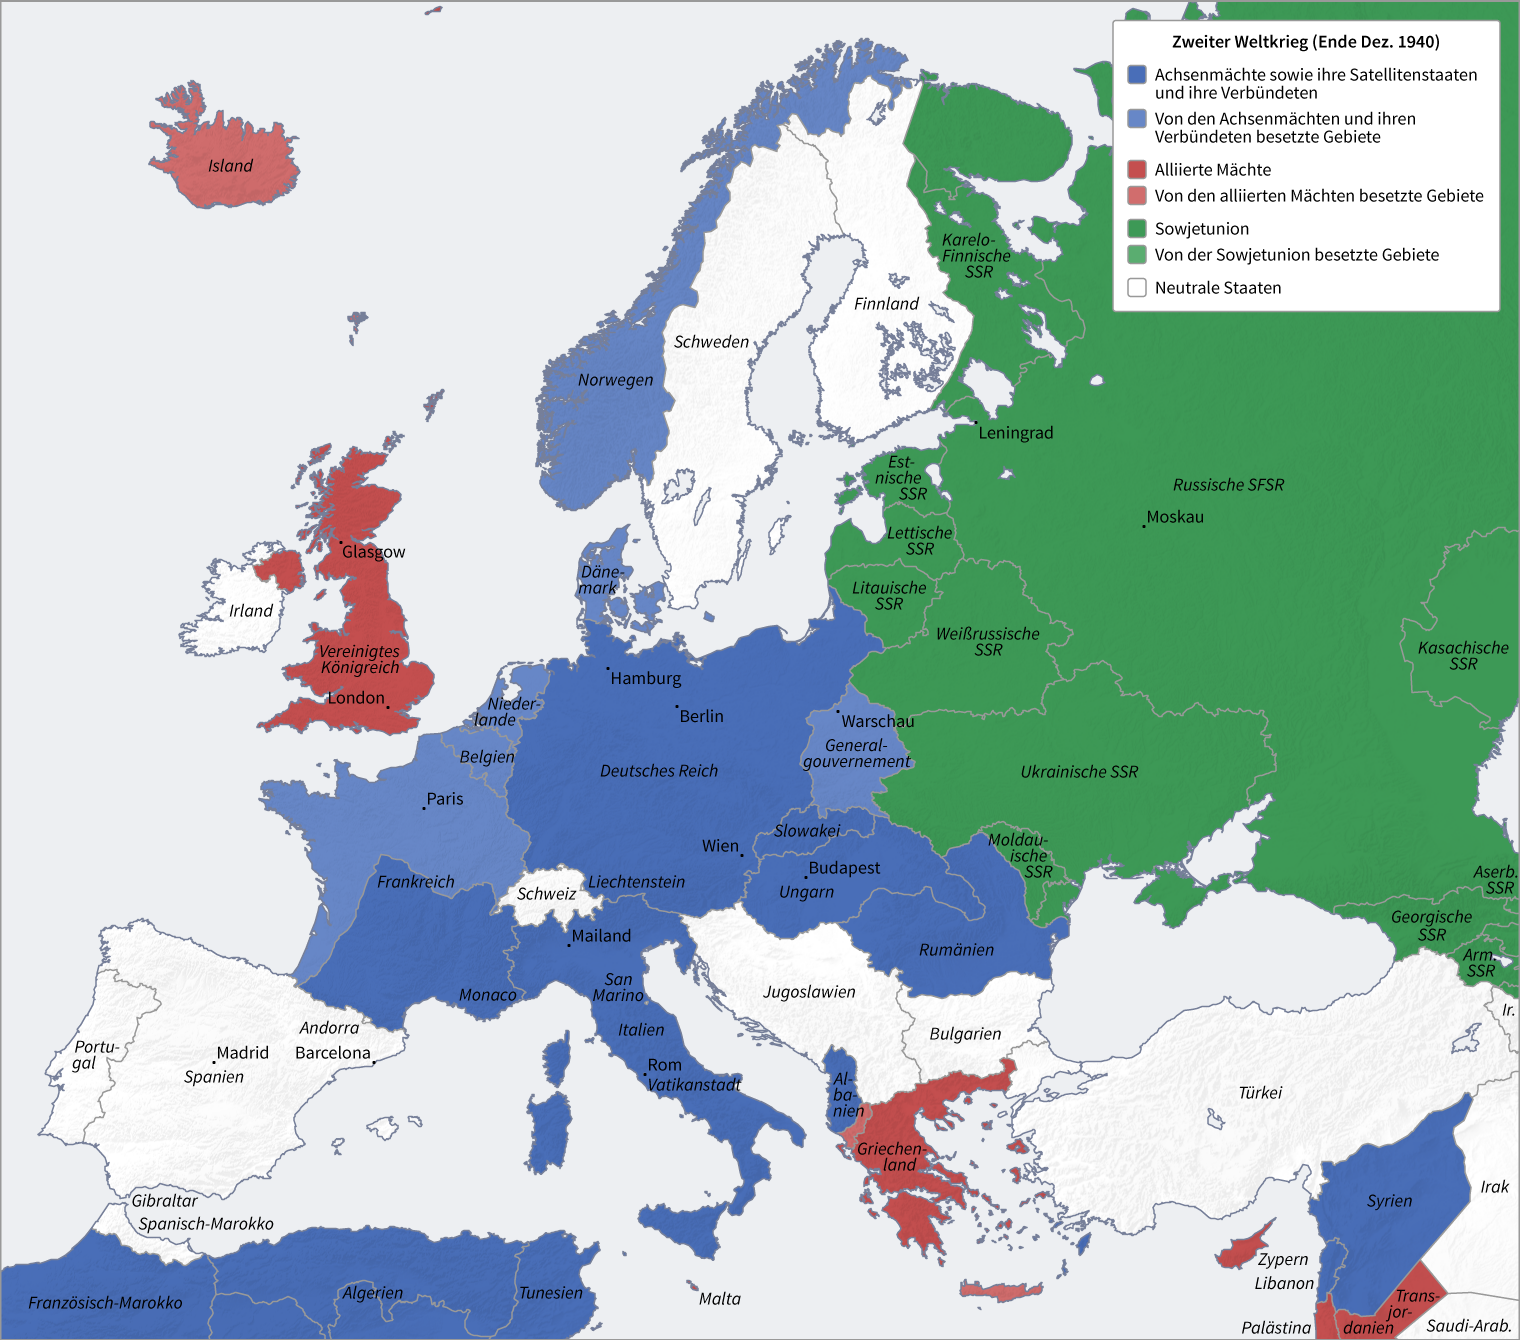 File Second World War Europe 12 1940 de Wikimedia mons